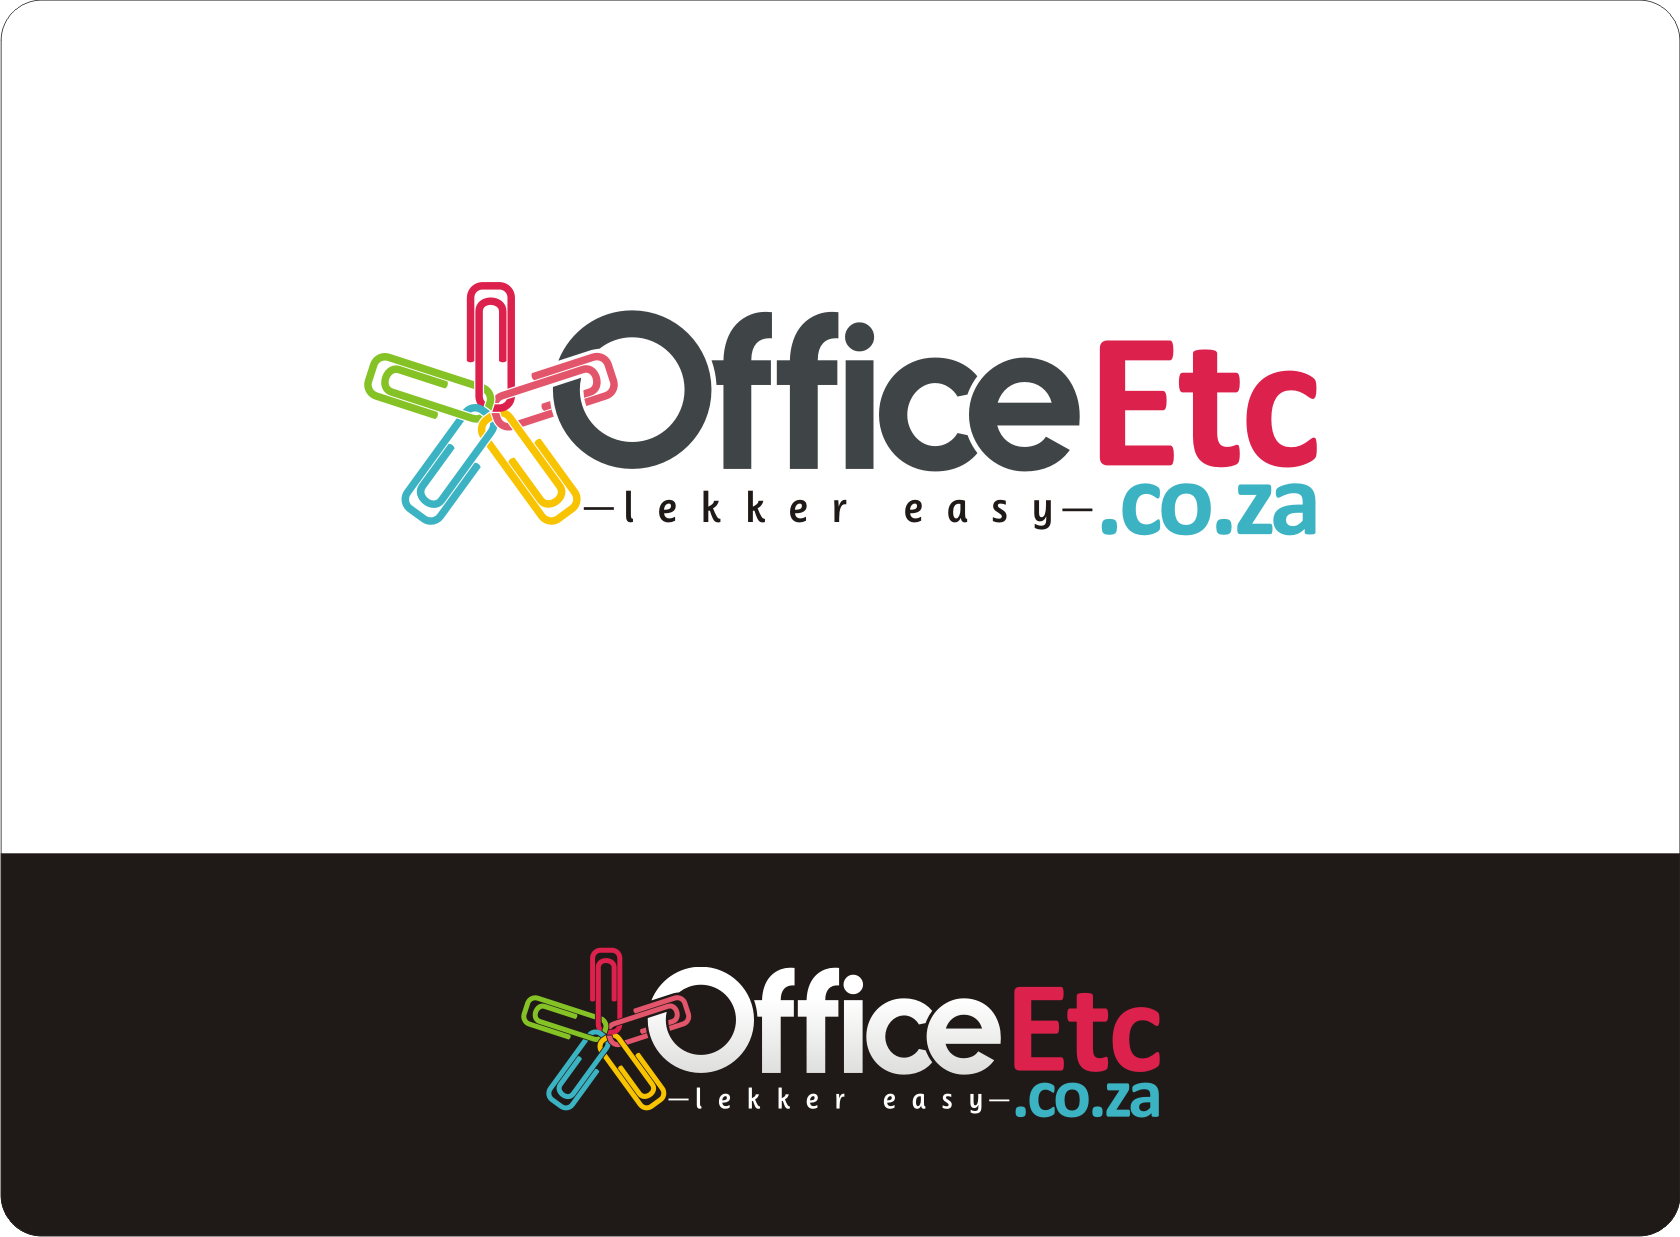 Logo for OfficeEtc or OfficeEtc.co.za